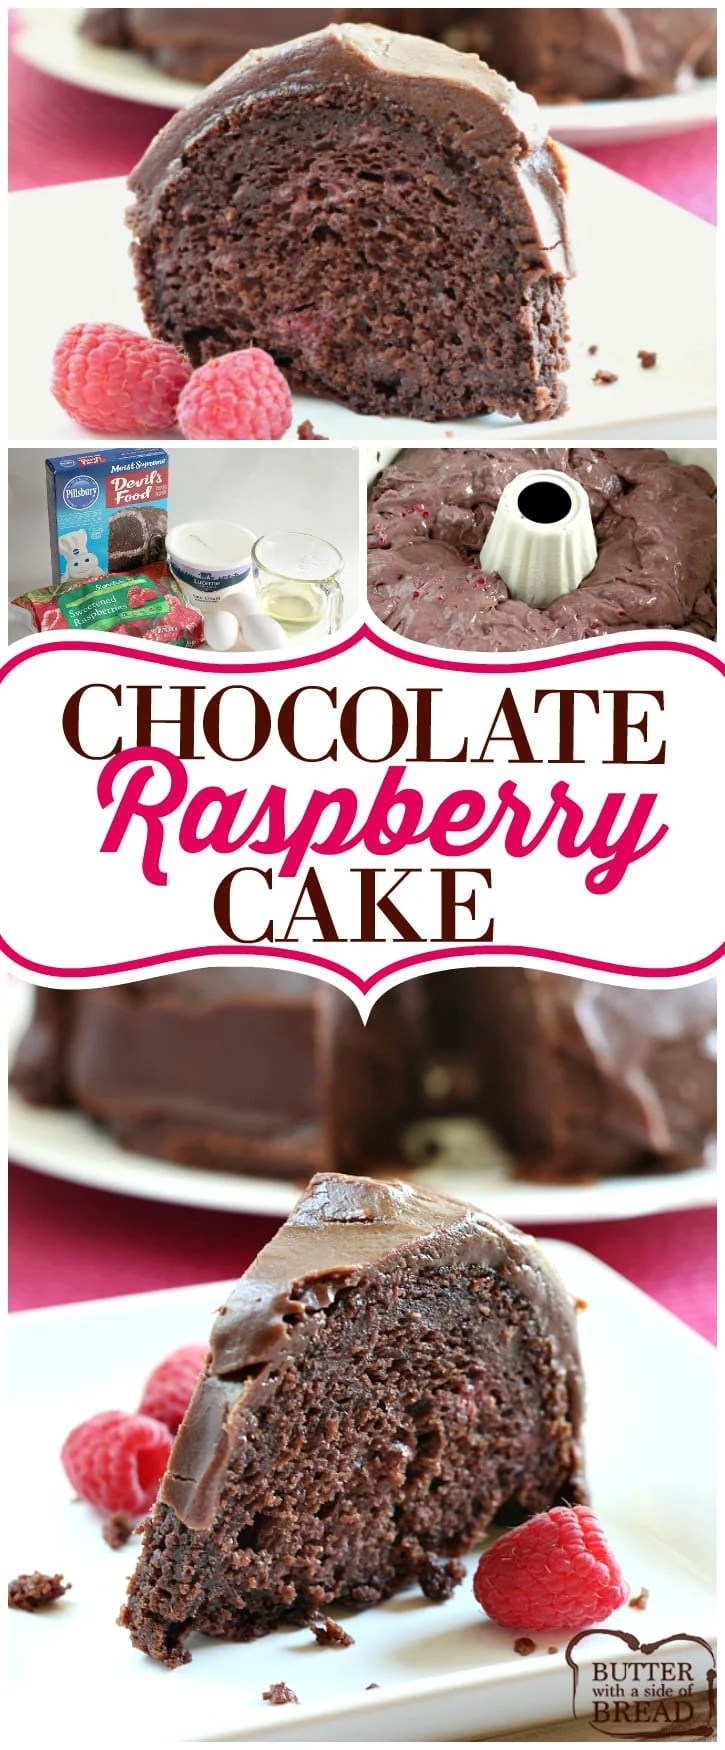 Easy cake recipe that's absolutely INCREDIBLE! Just 5 ingredients and everyone loves the chocolate raspberry combination! This Chocolate Raspberry Cake starts with a cake mix and a bag of frozen raspberries and it is so delicious, no one will ever guess how easy it is to make! Best chocolate cake recipe from Butter With A Side of Bread